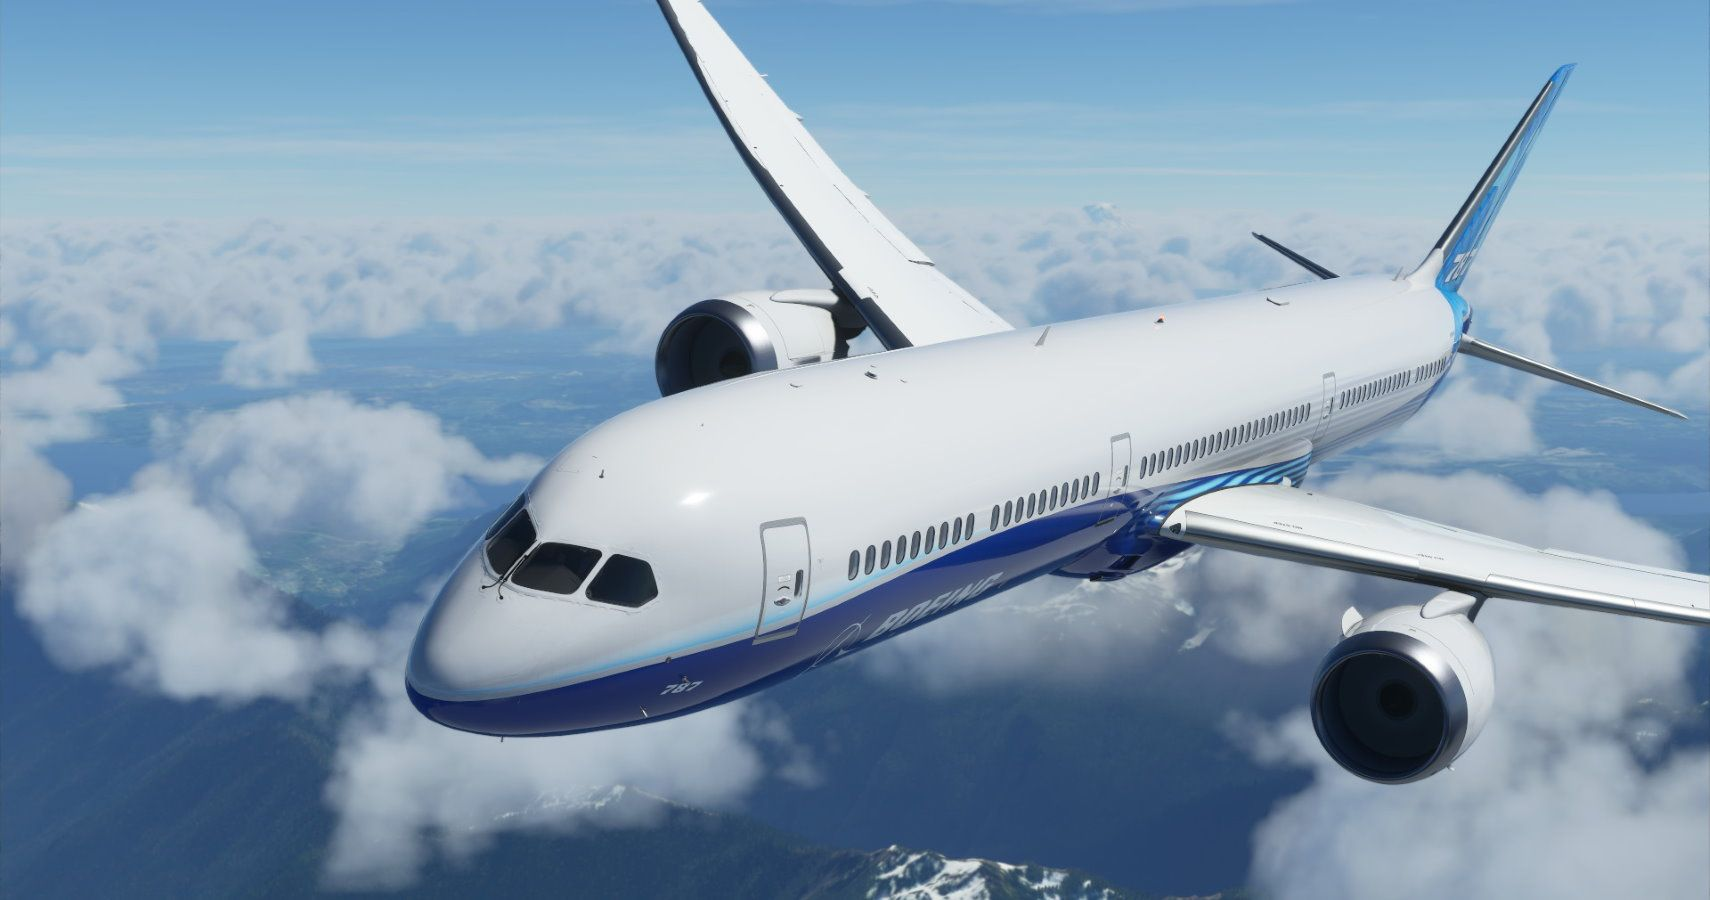 Microsoft Flight Simulator 2020 Isn't Approved For Sale In China—Here's Why